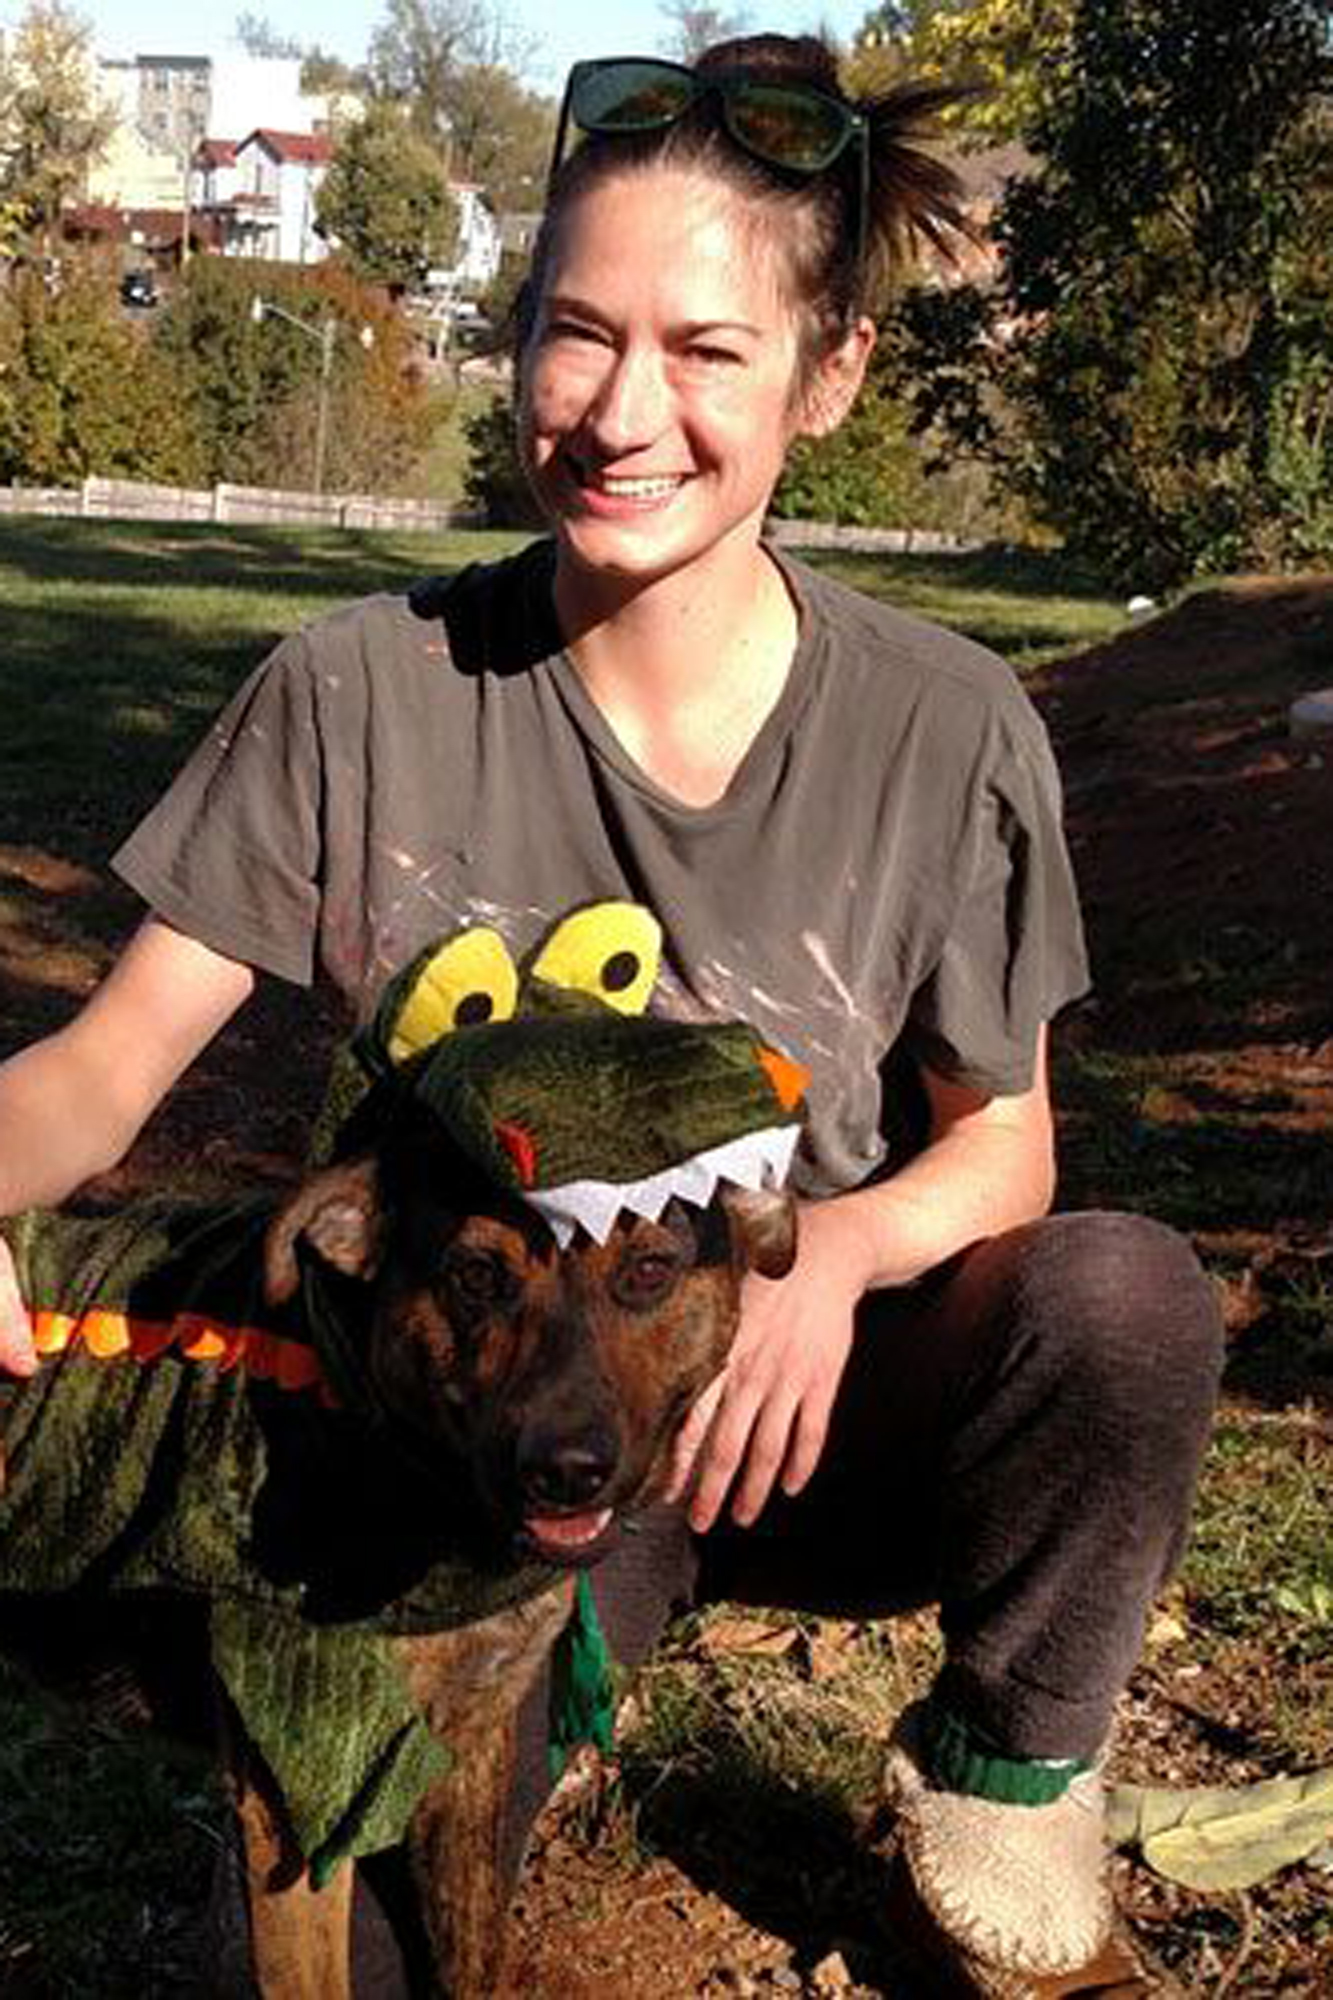 Missing Charlottesville woman Molly Meghan Miller found dead inside her home.